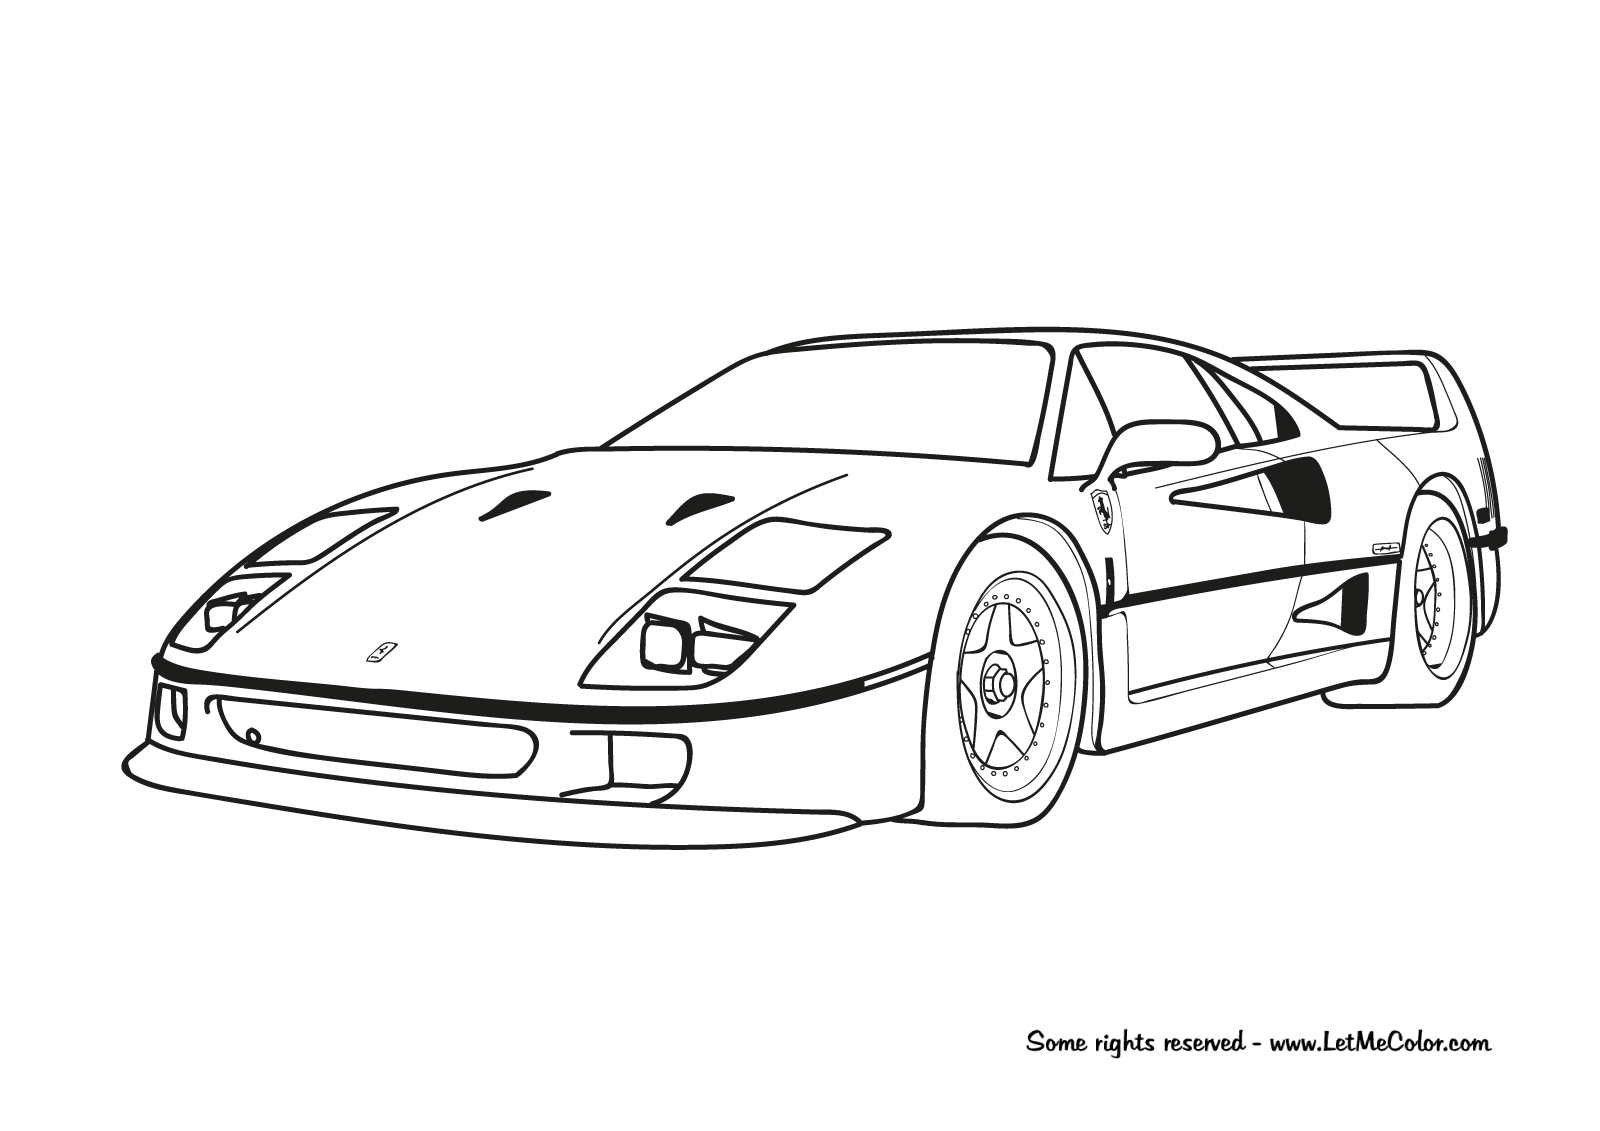 coloring pages of ferrari ferrari coloring pages to download and print for free pages coloring of ferrari